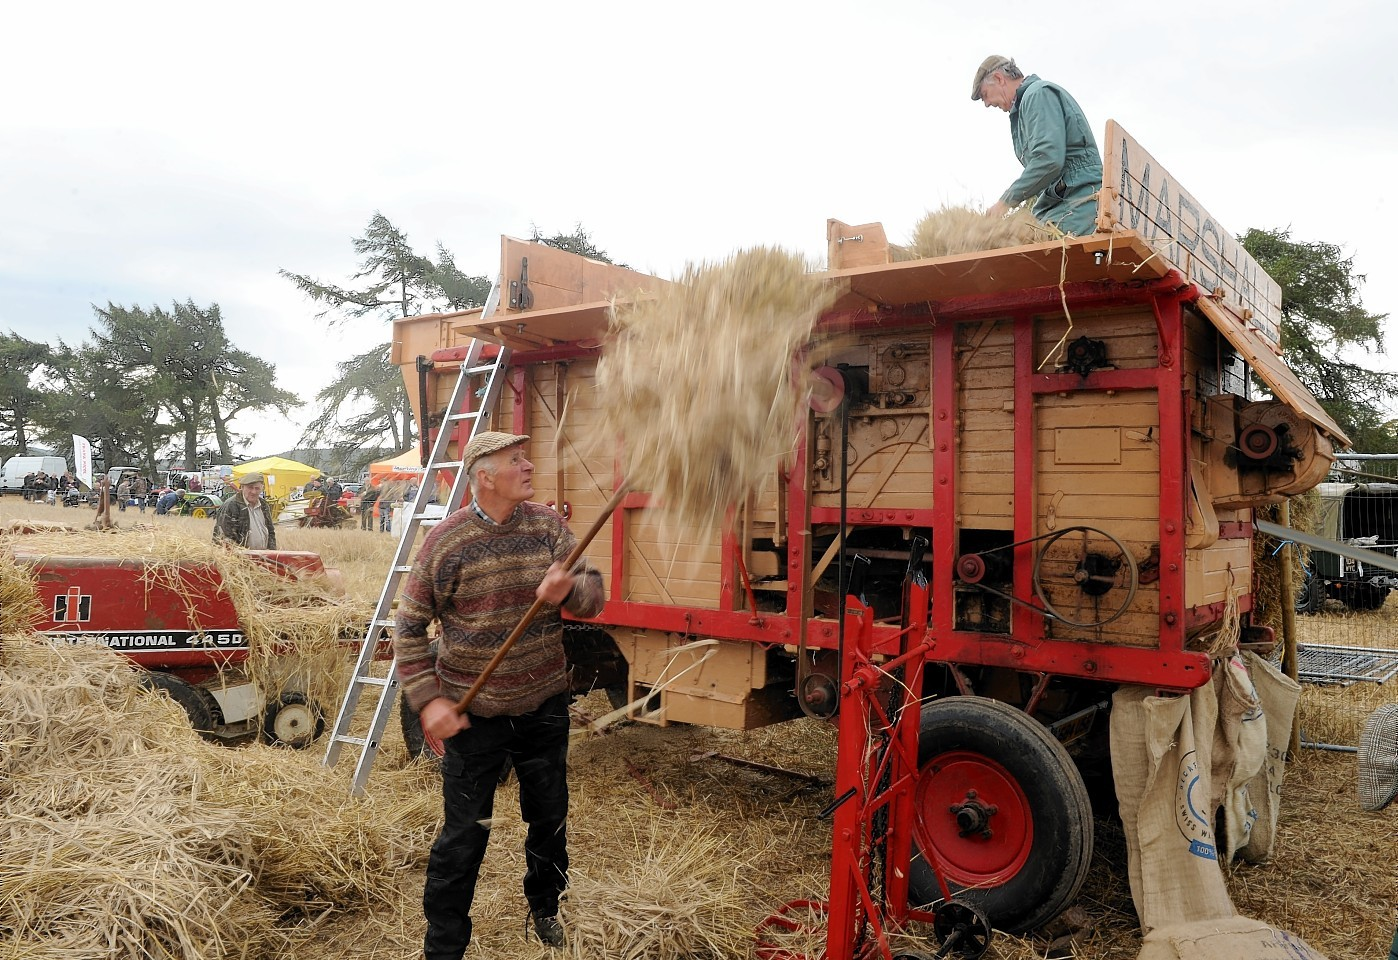 Agricultural machinery on display at the Strathnairn vintage rally